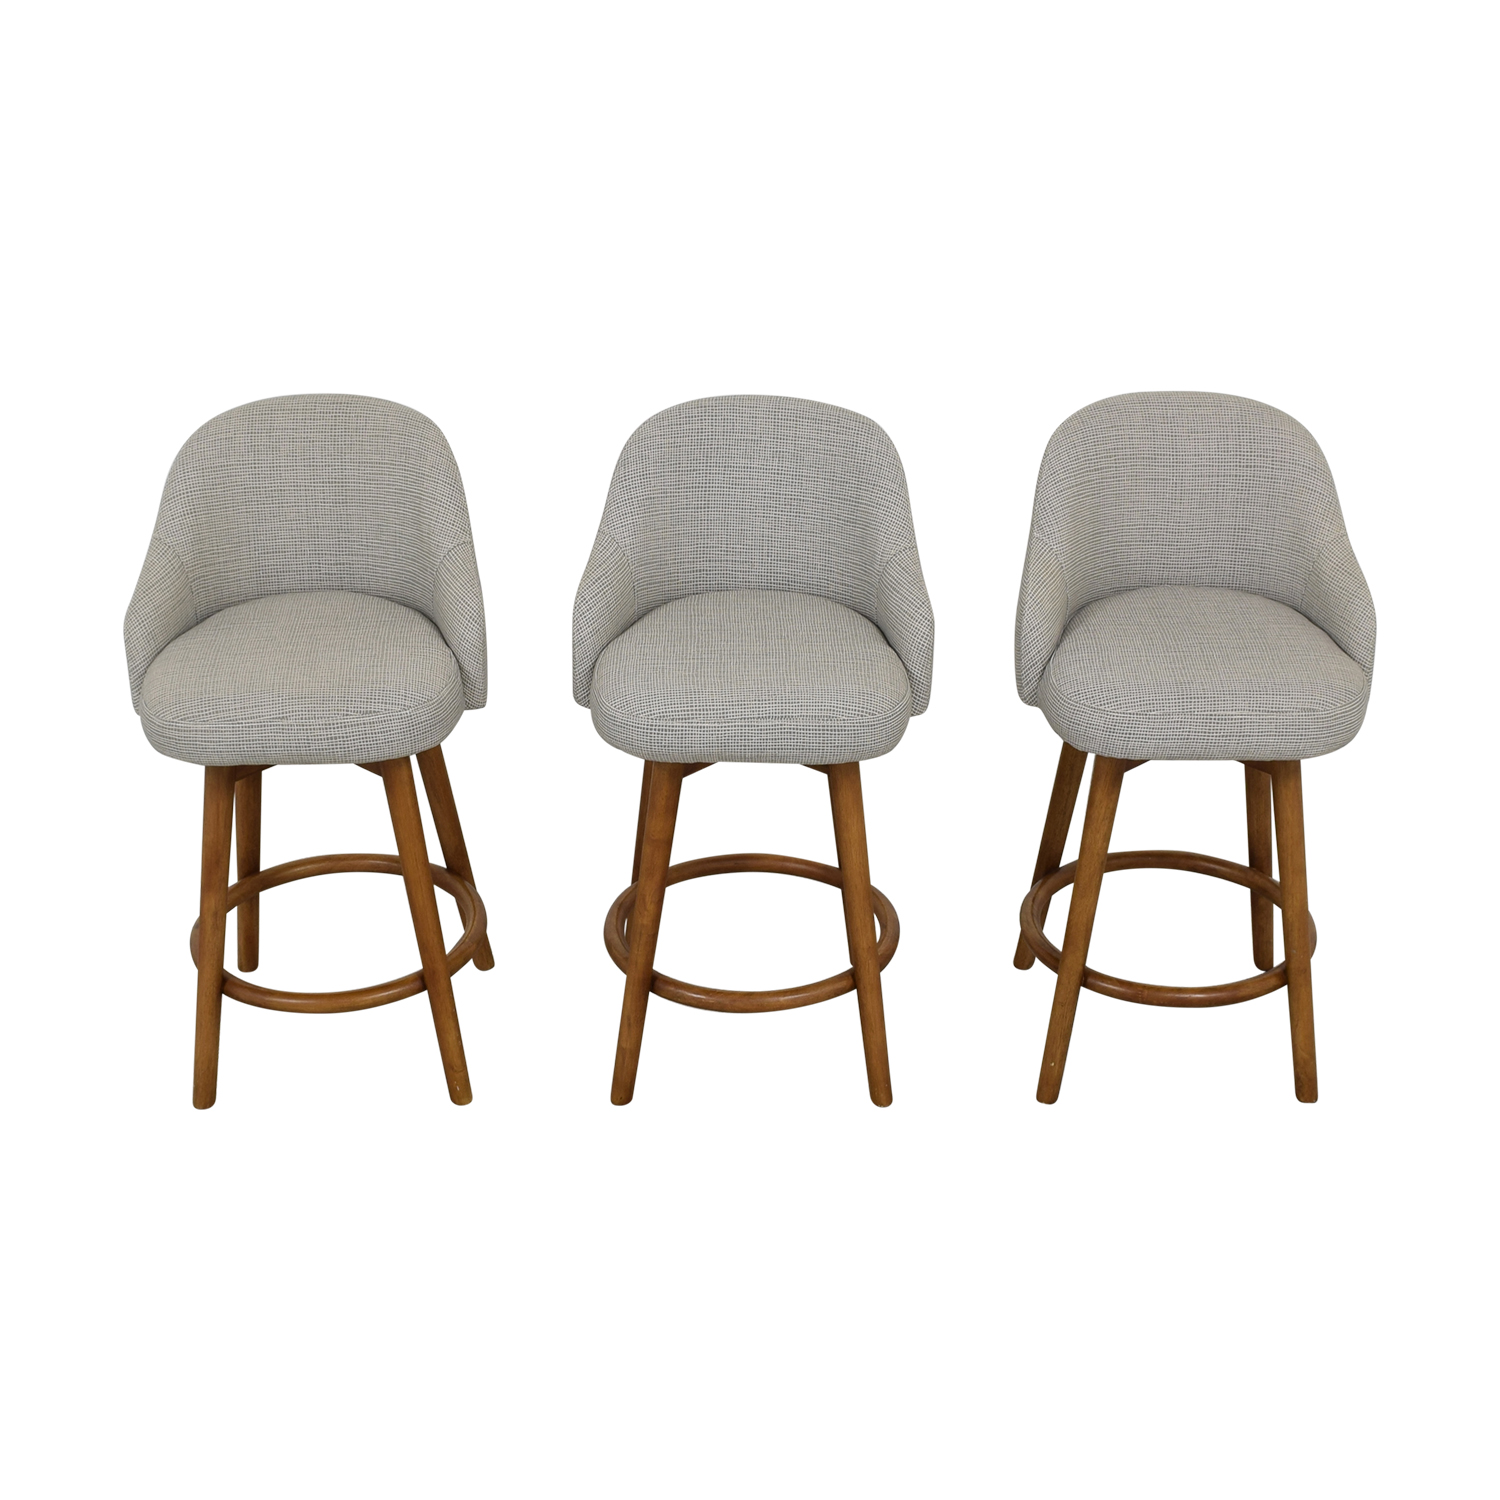 West Elm West Elm Mid-Century Swivel Upholstered Stools discount